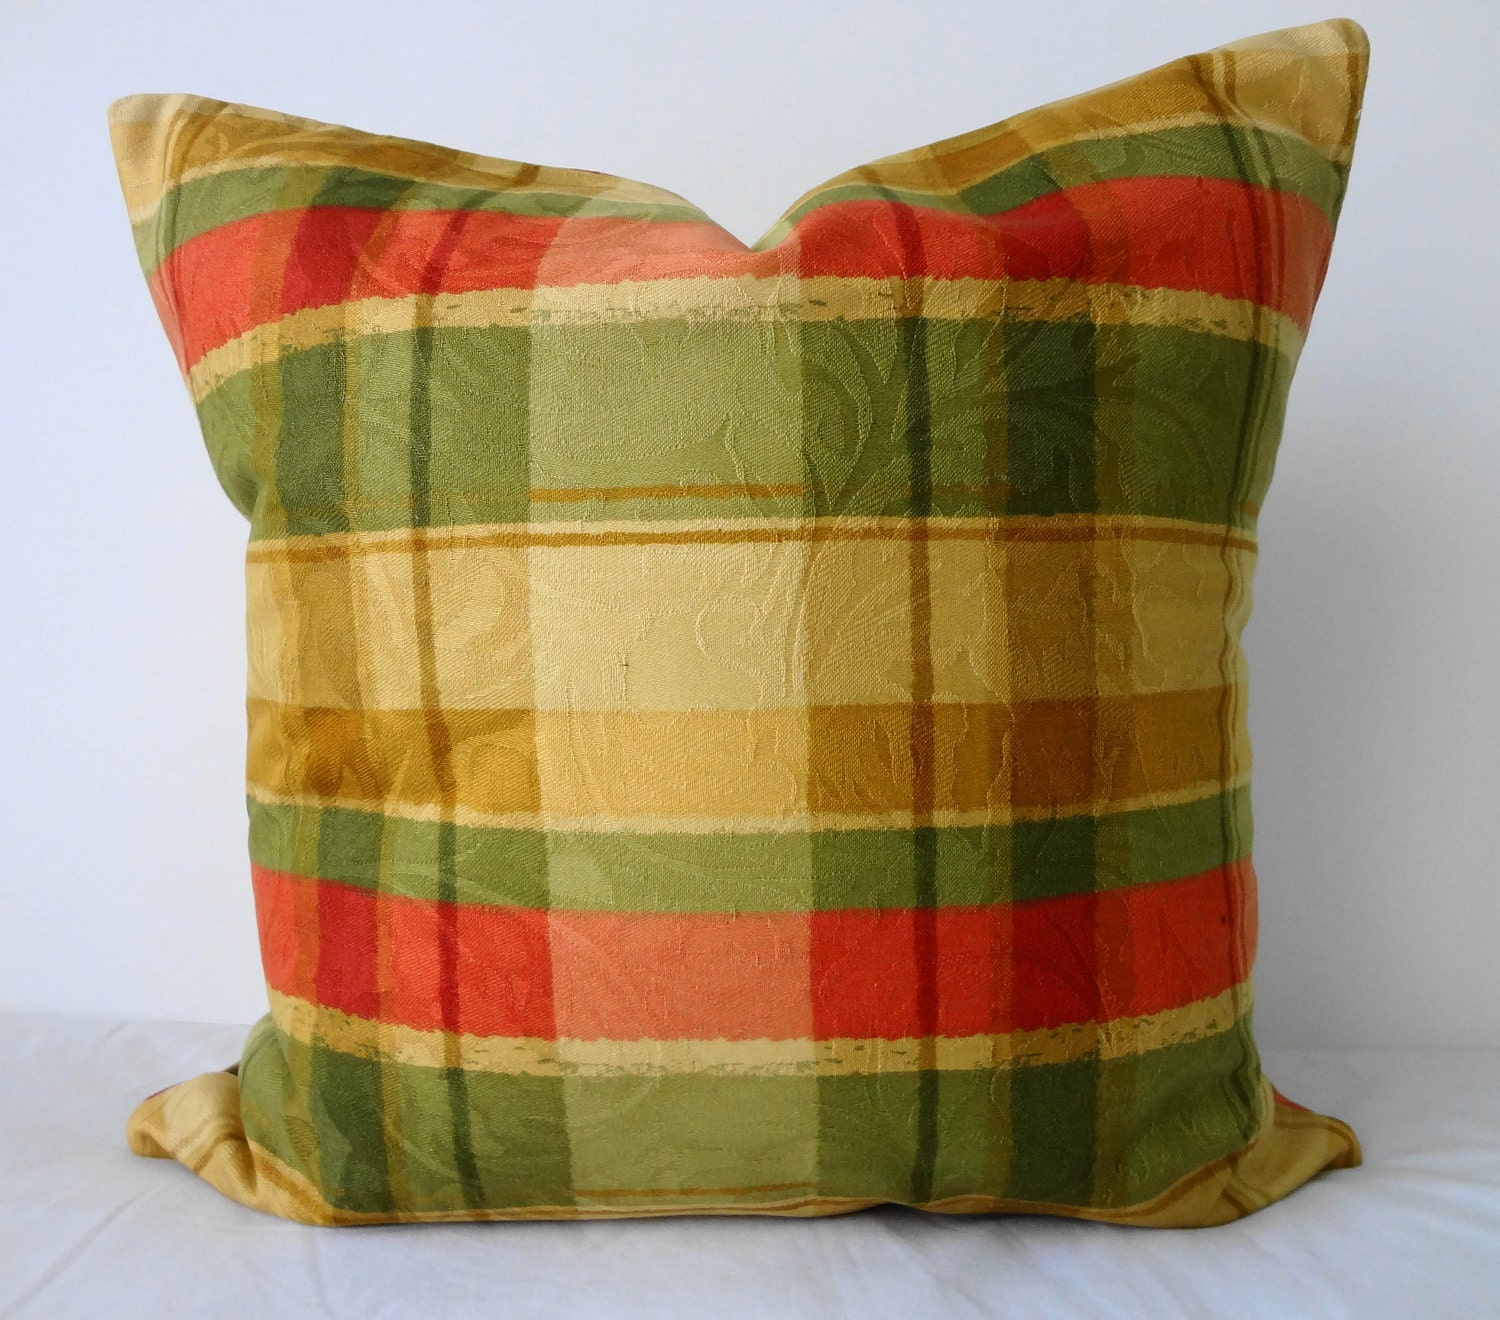 SALE 20% Discount Decorative Throw Pillow by pillows4fun